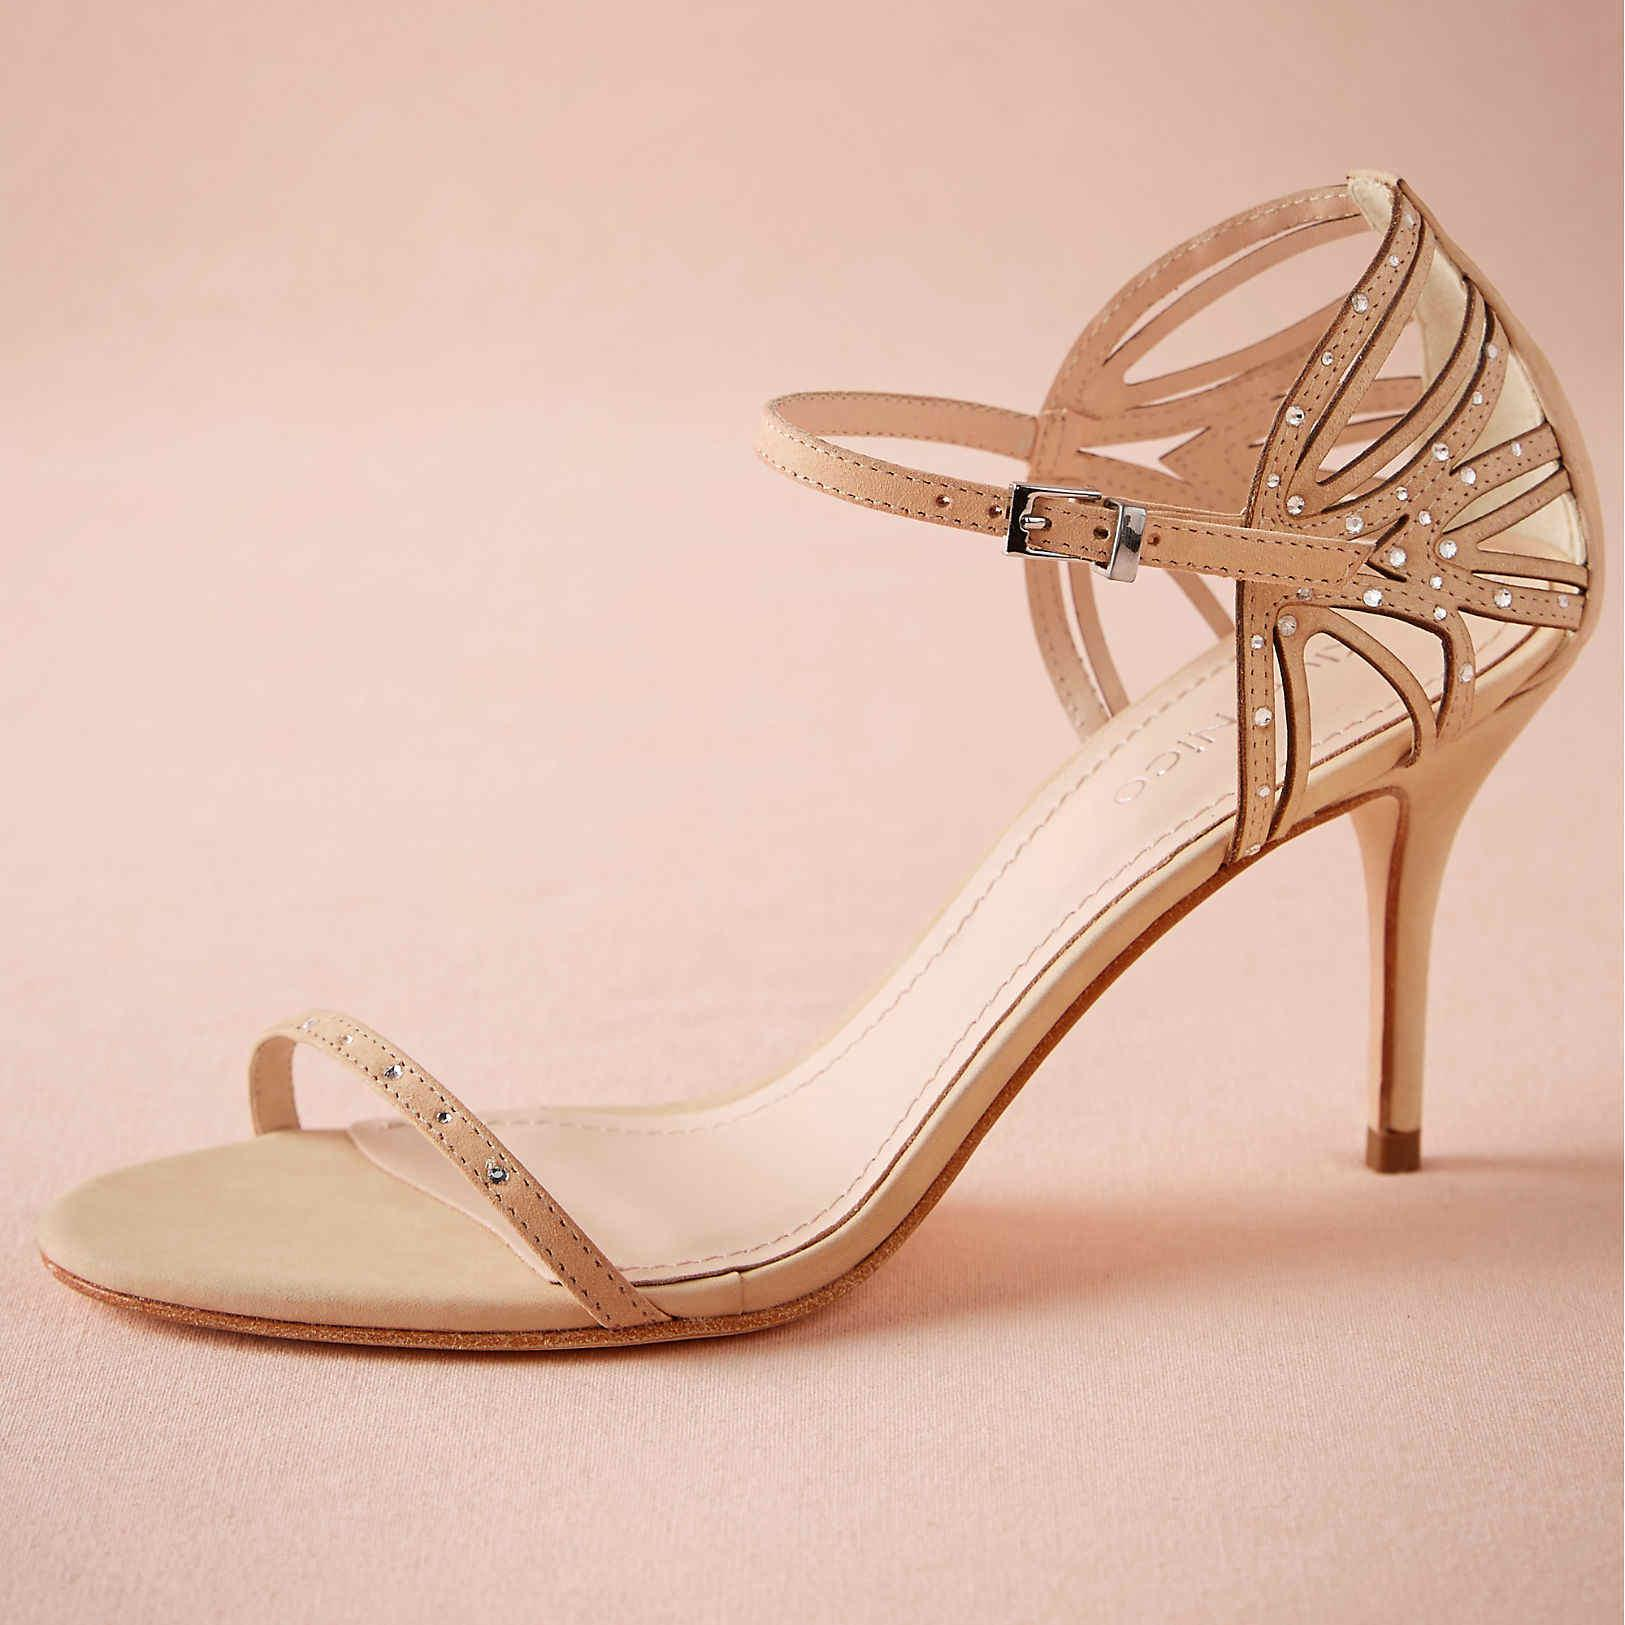 Blush Pink Wedding Shoes Sandal Open Toe 2015 Women Pumps Wedding Crystals  Custom Made Women Pumps Slingbacks Party Dance Shoes 3 Heels Womens Sandals  ...